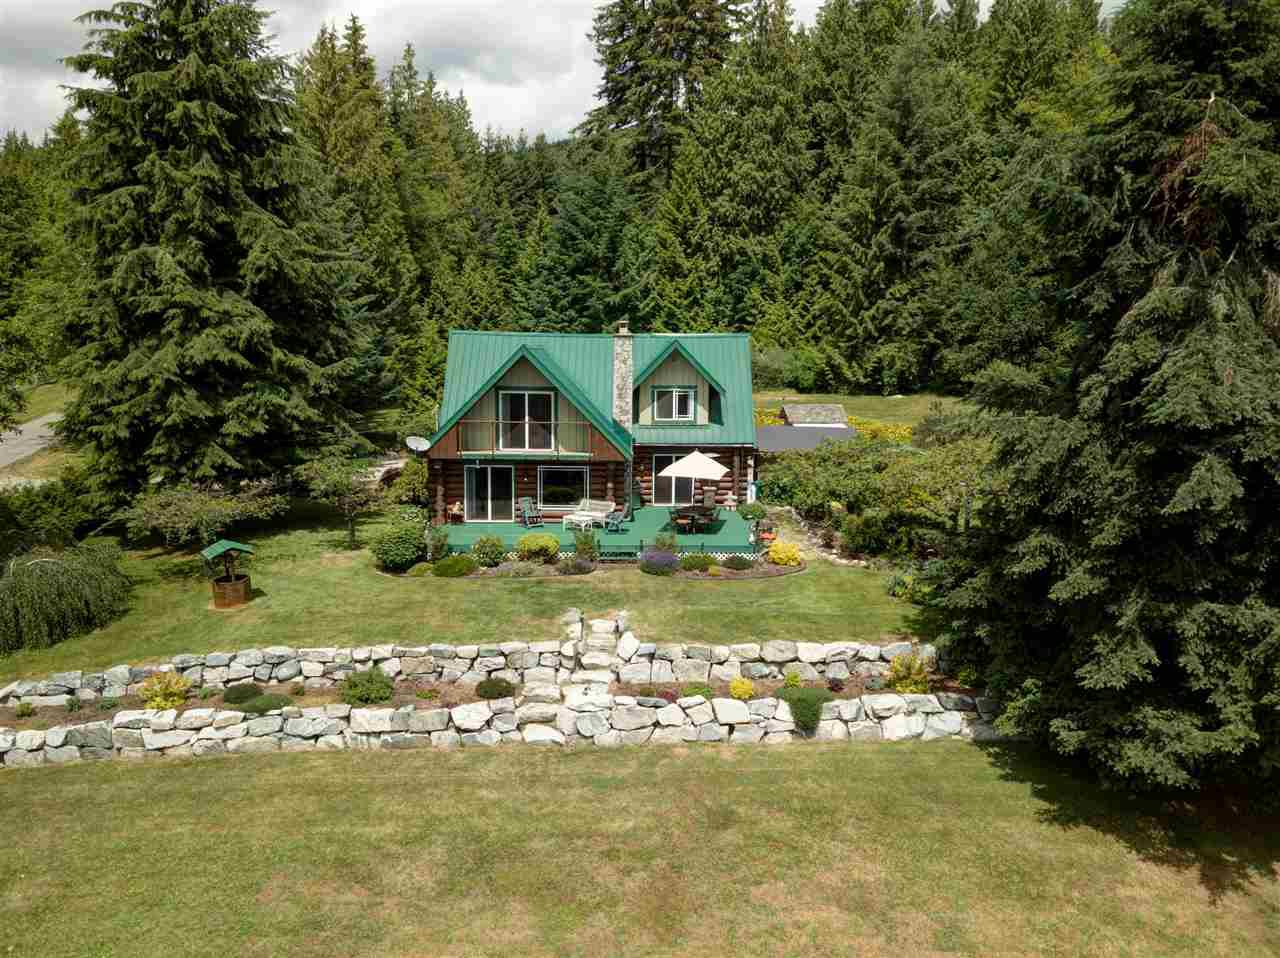 Main Photo: 736 MANSFIELD Road: Roberts Creek House for sale (Sunshine Coast)  : MLS®# R2400940